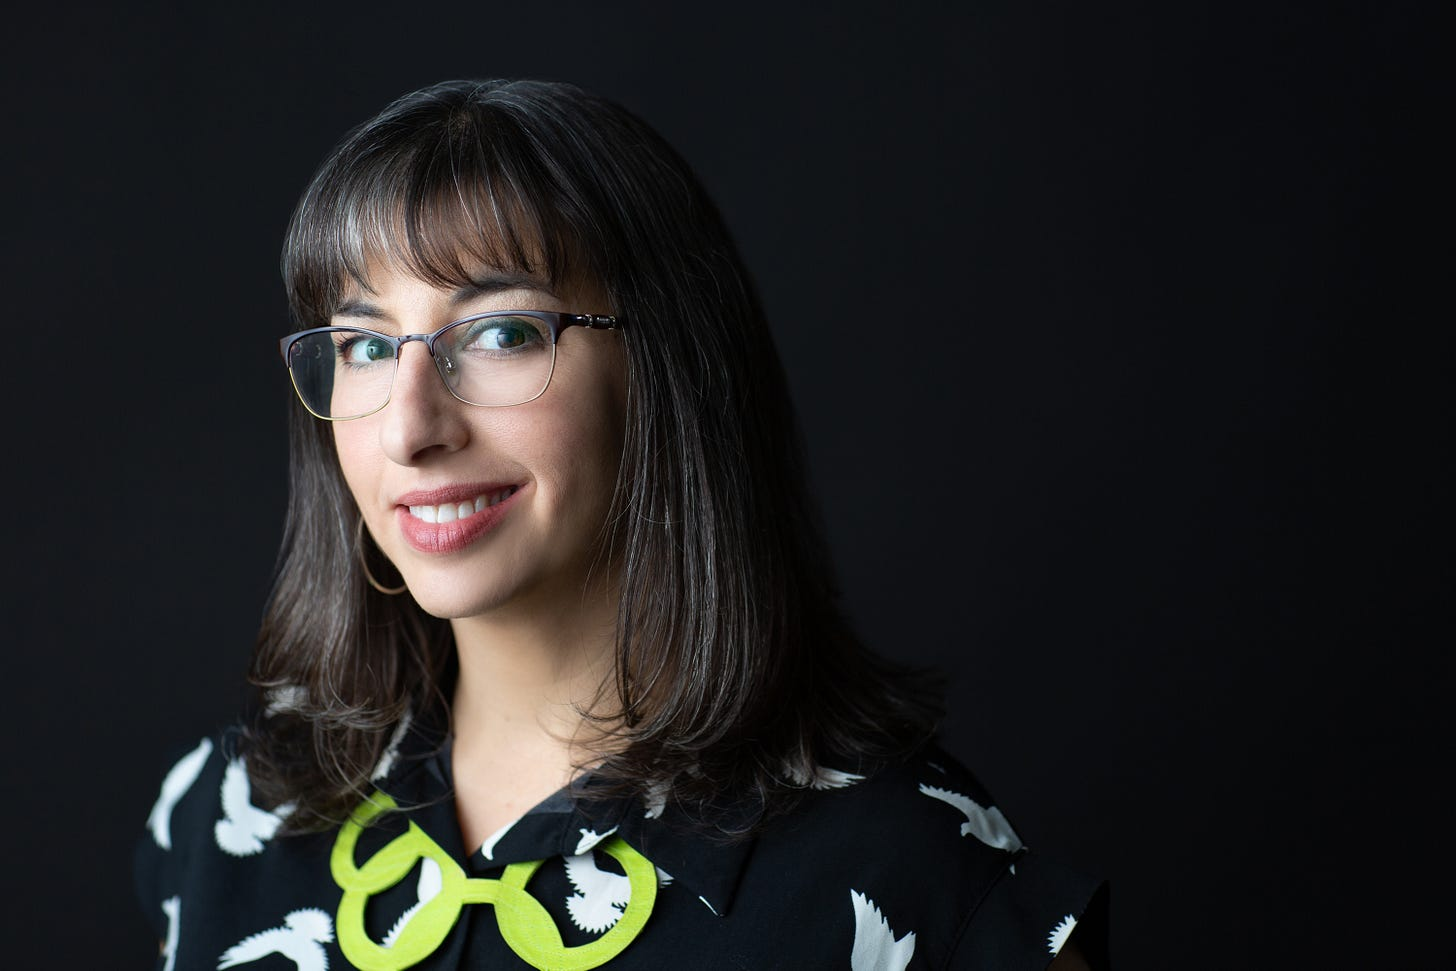 Photo of brown-haired female rabbi with bangs, glasses, wry smile